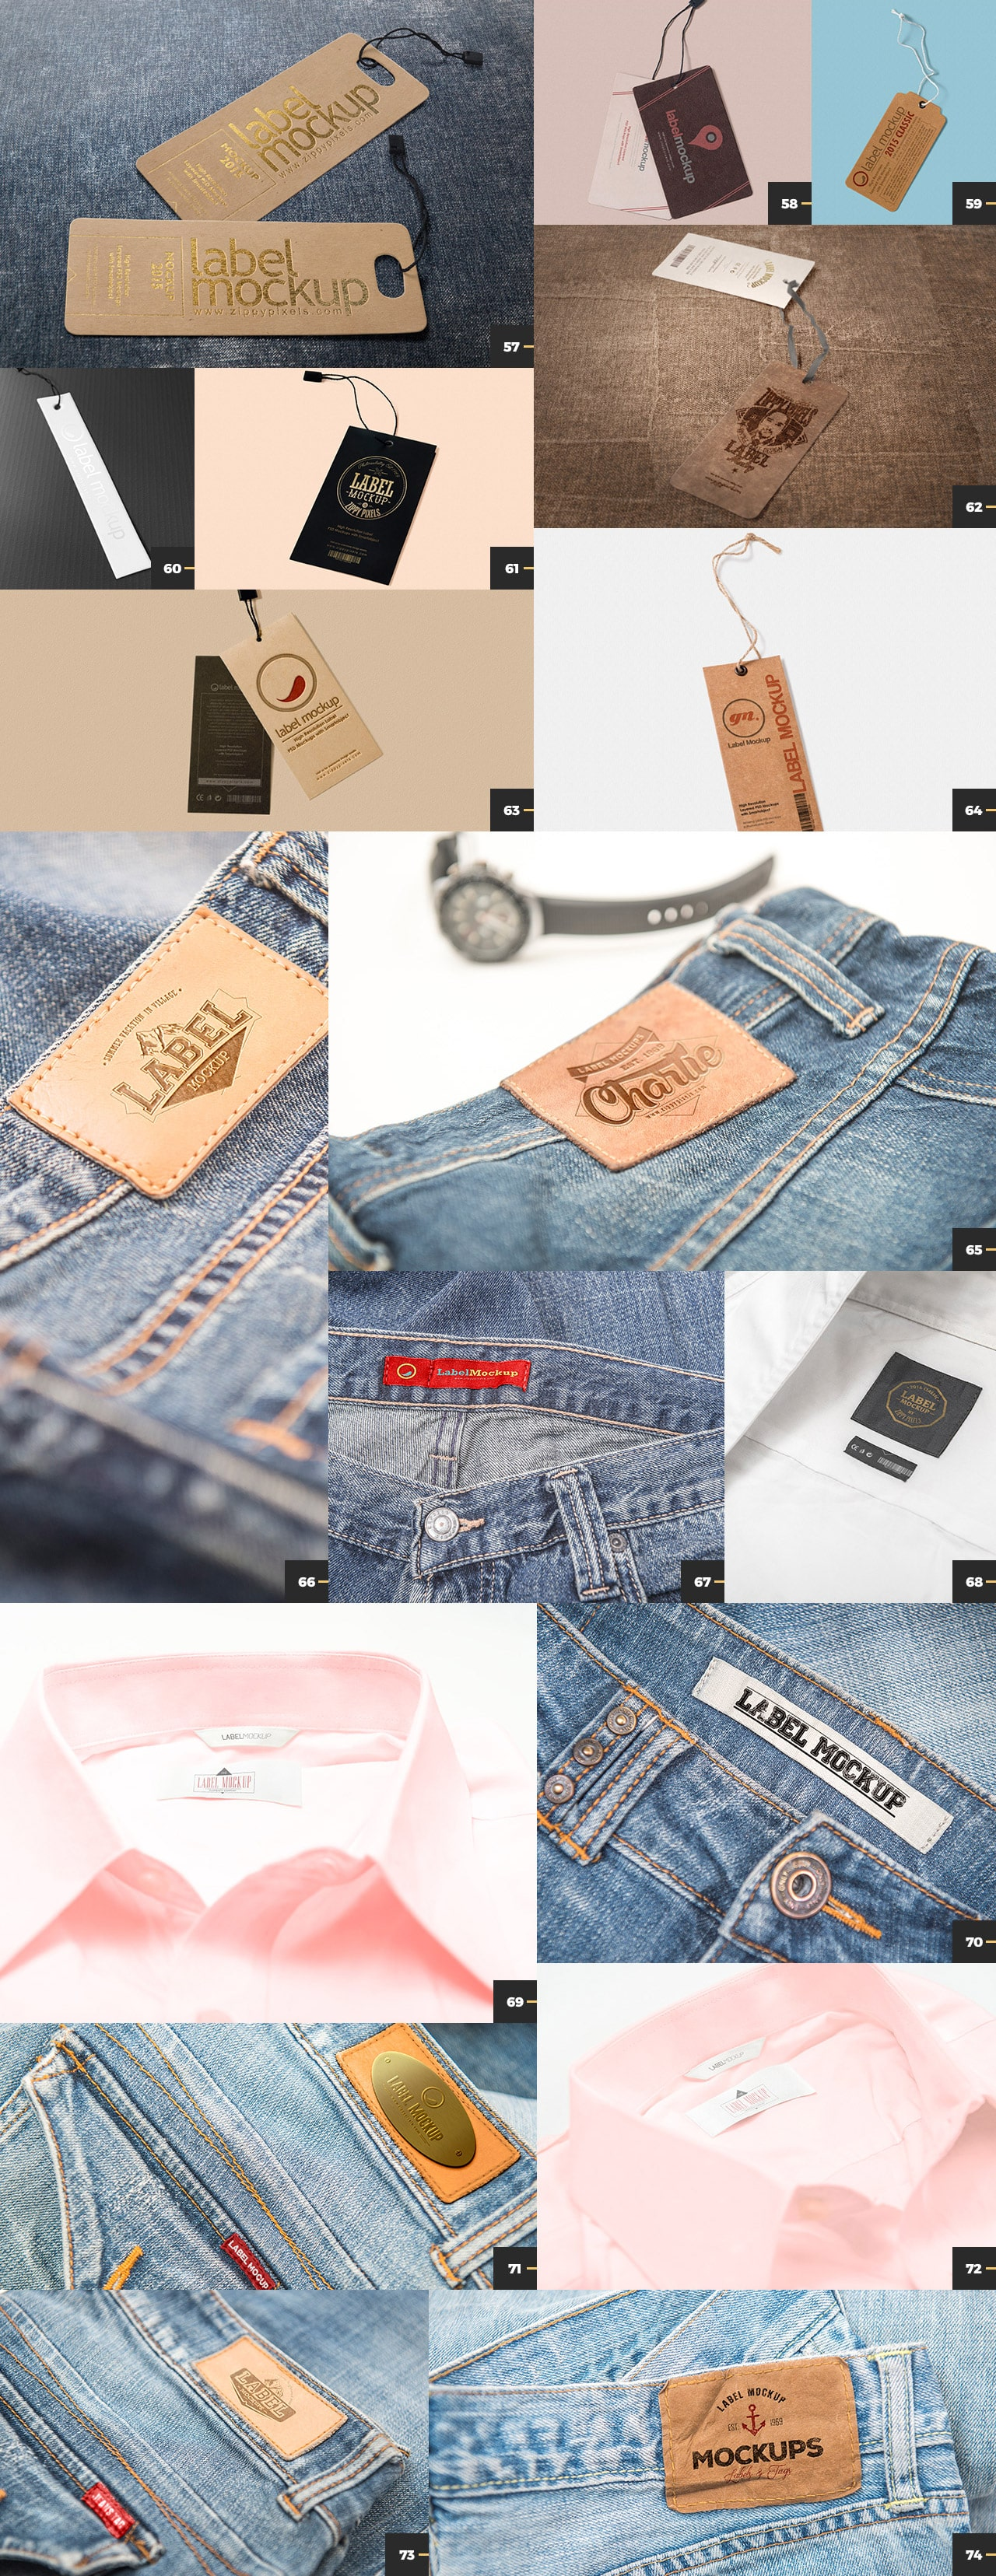 labels-and-tags-mockups-2